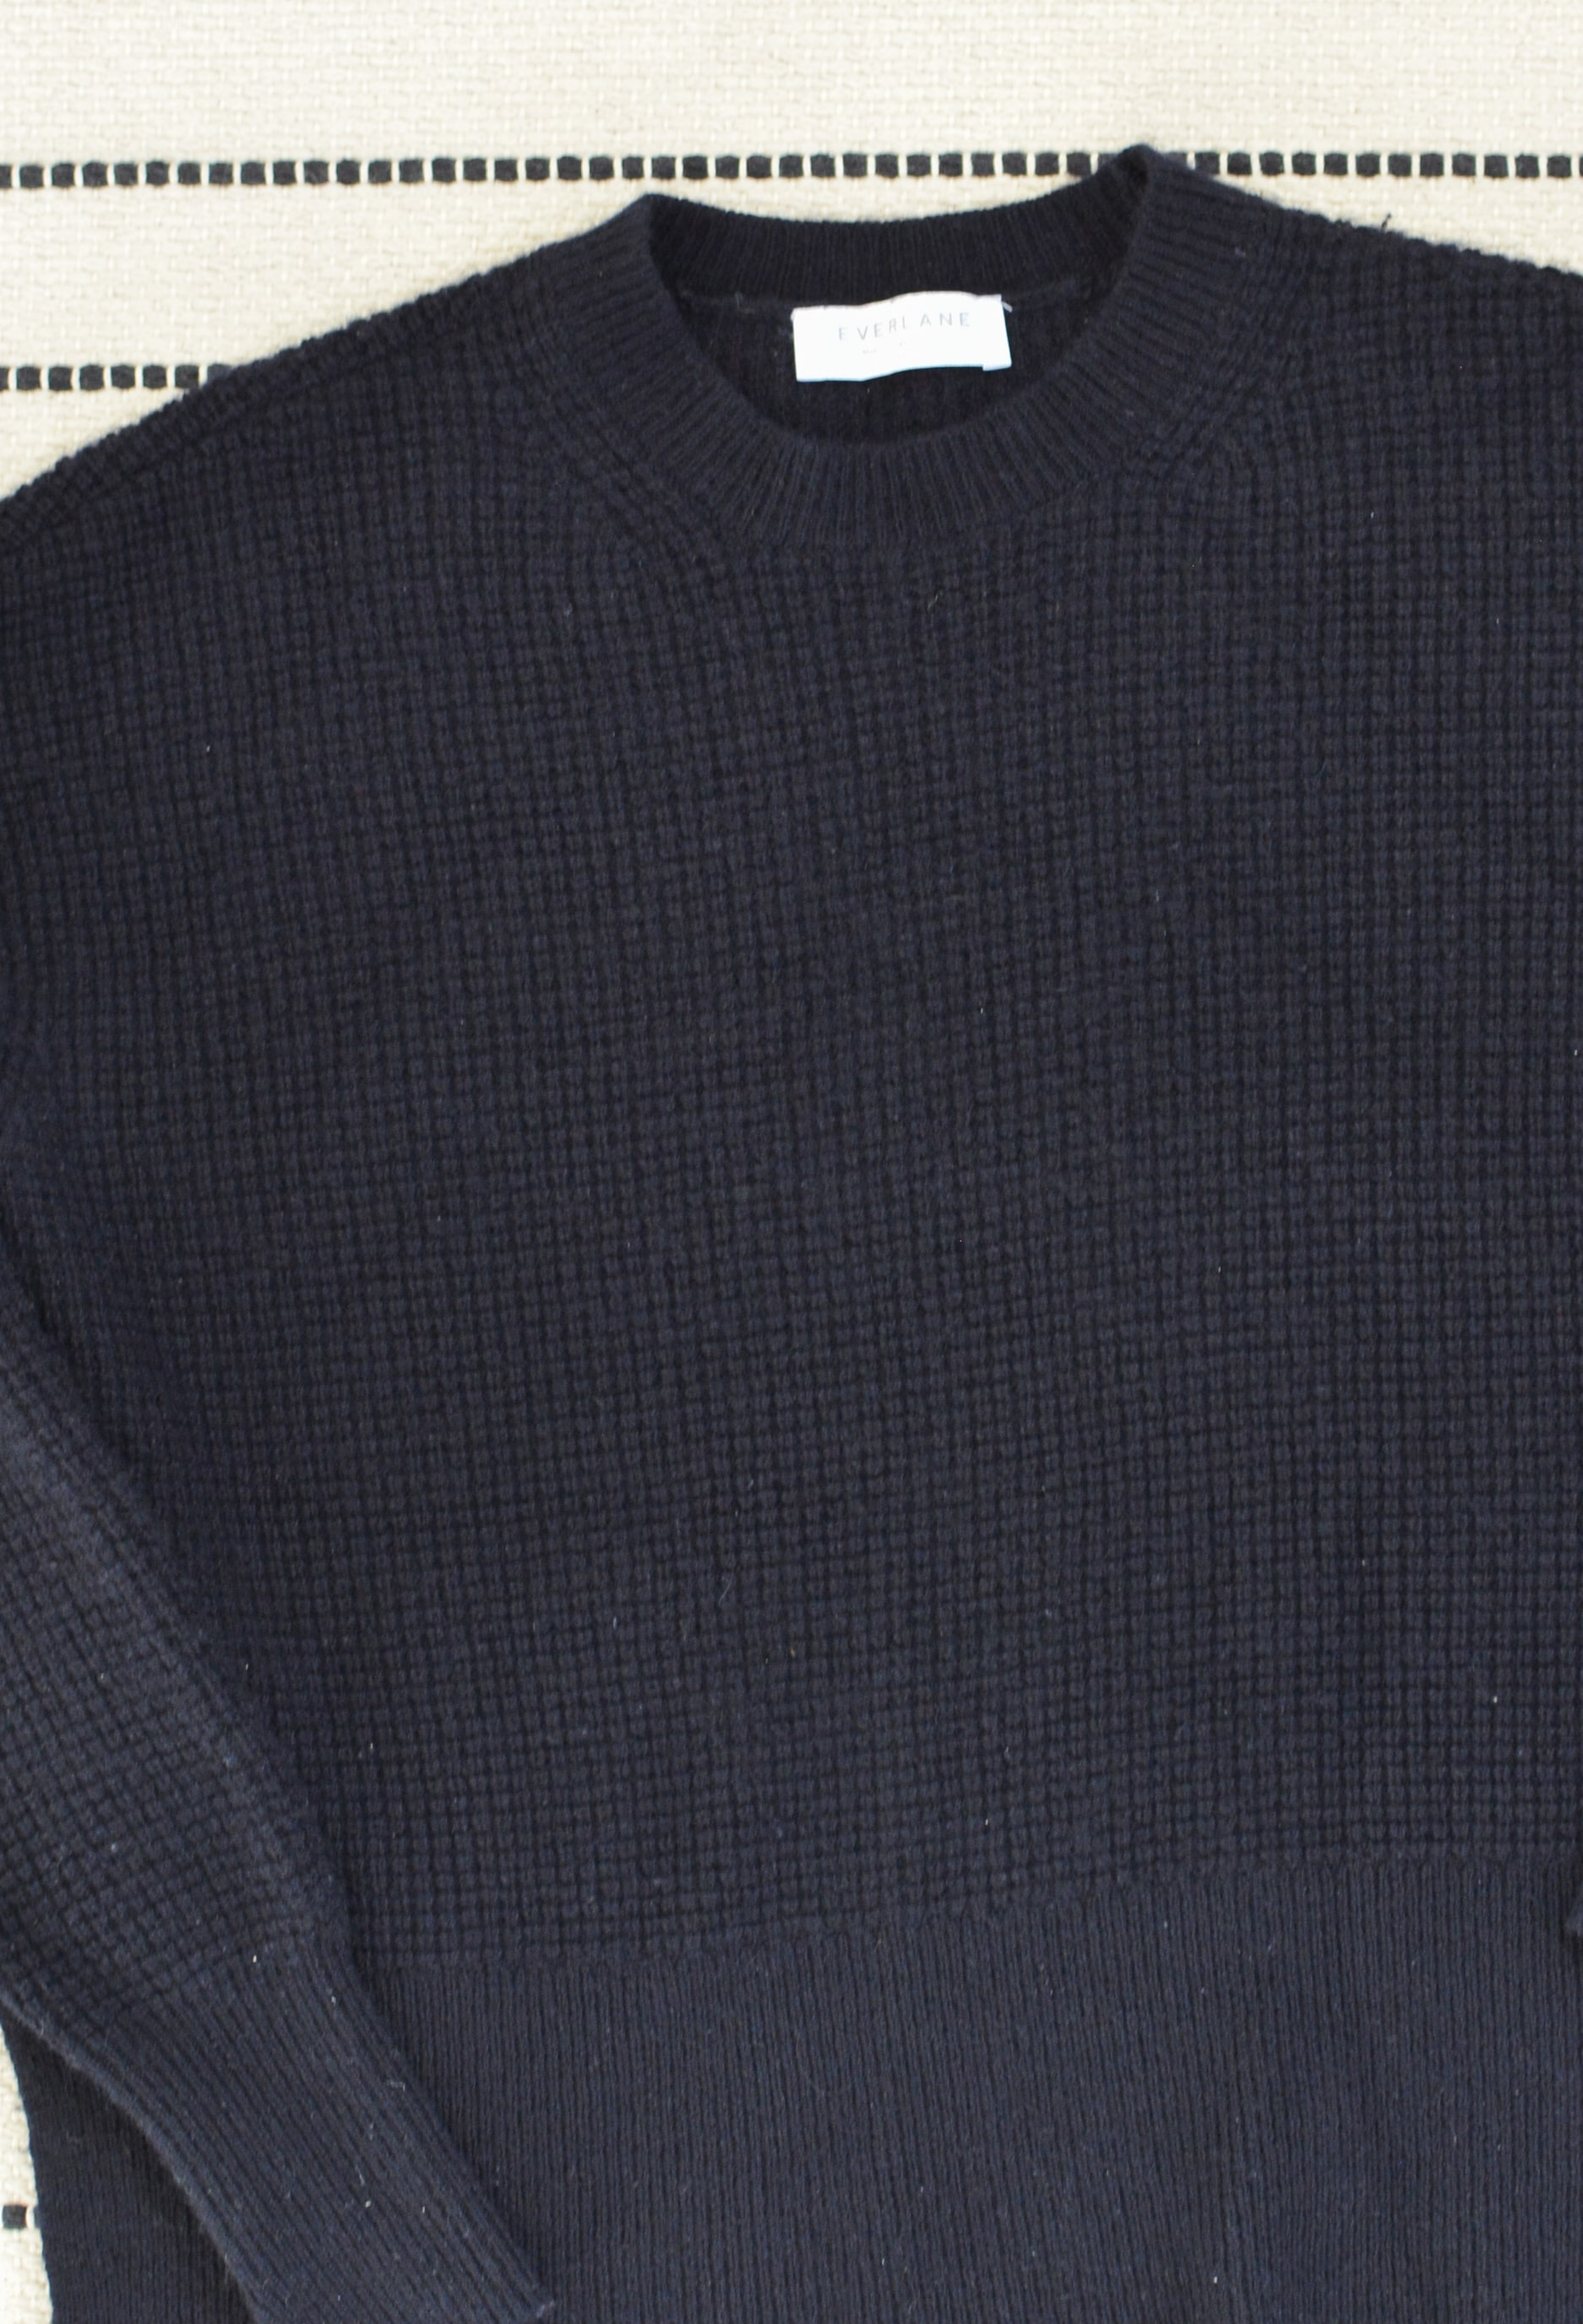 (ok so maybe it's hard to tell in the pics, but the pilling is gone, but the sweater did pick up some lint)